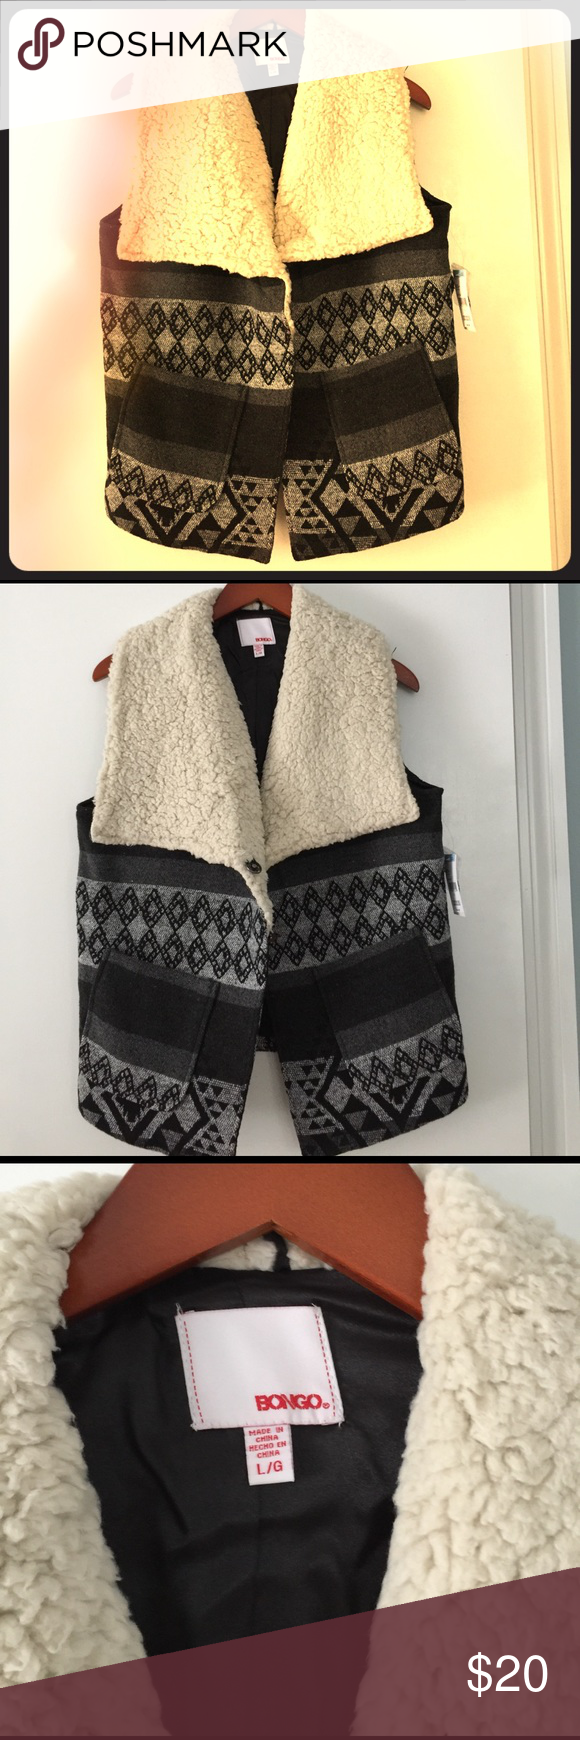 Warm Tribal Pattern Vest This Tribal Pattern Vest has fur like material. It is size Large. Still has tags never worn. It is missing the belt but it can be worn without it. Two of the buttons (check out photo) need to be sewn on in parts. BONGO Other